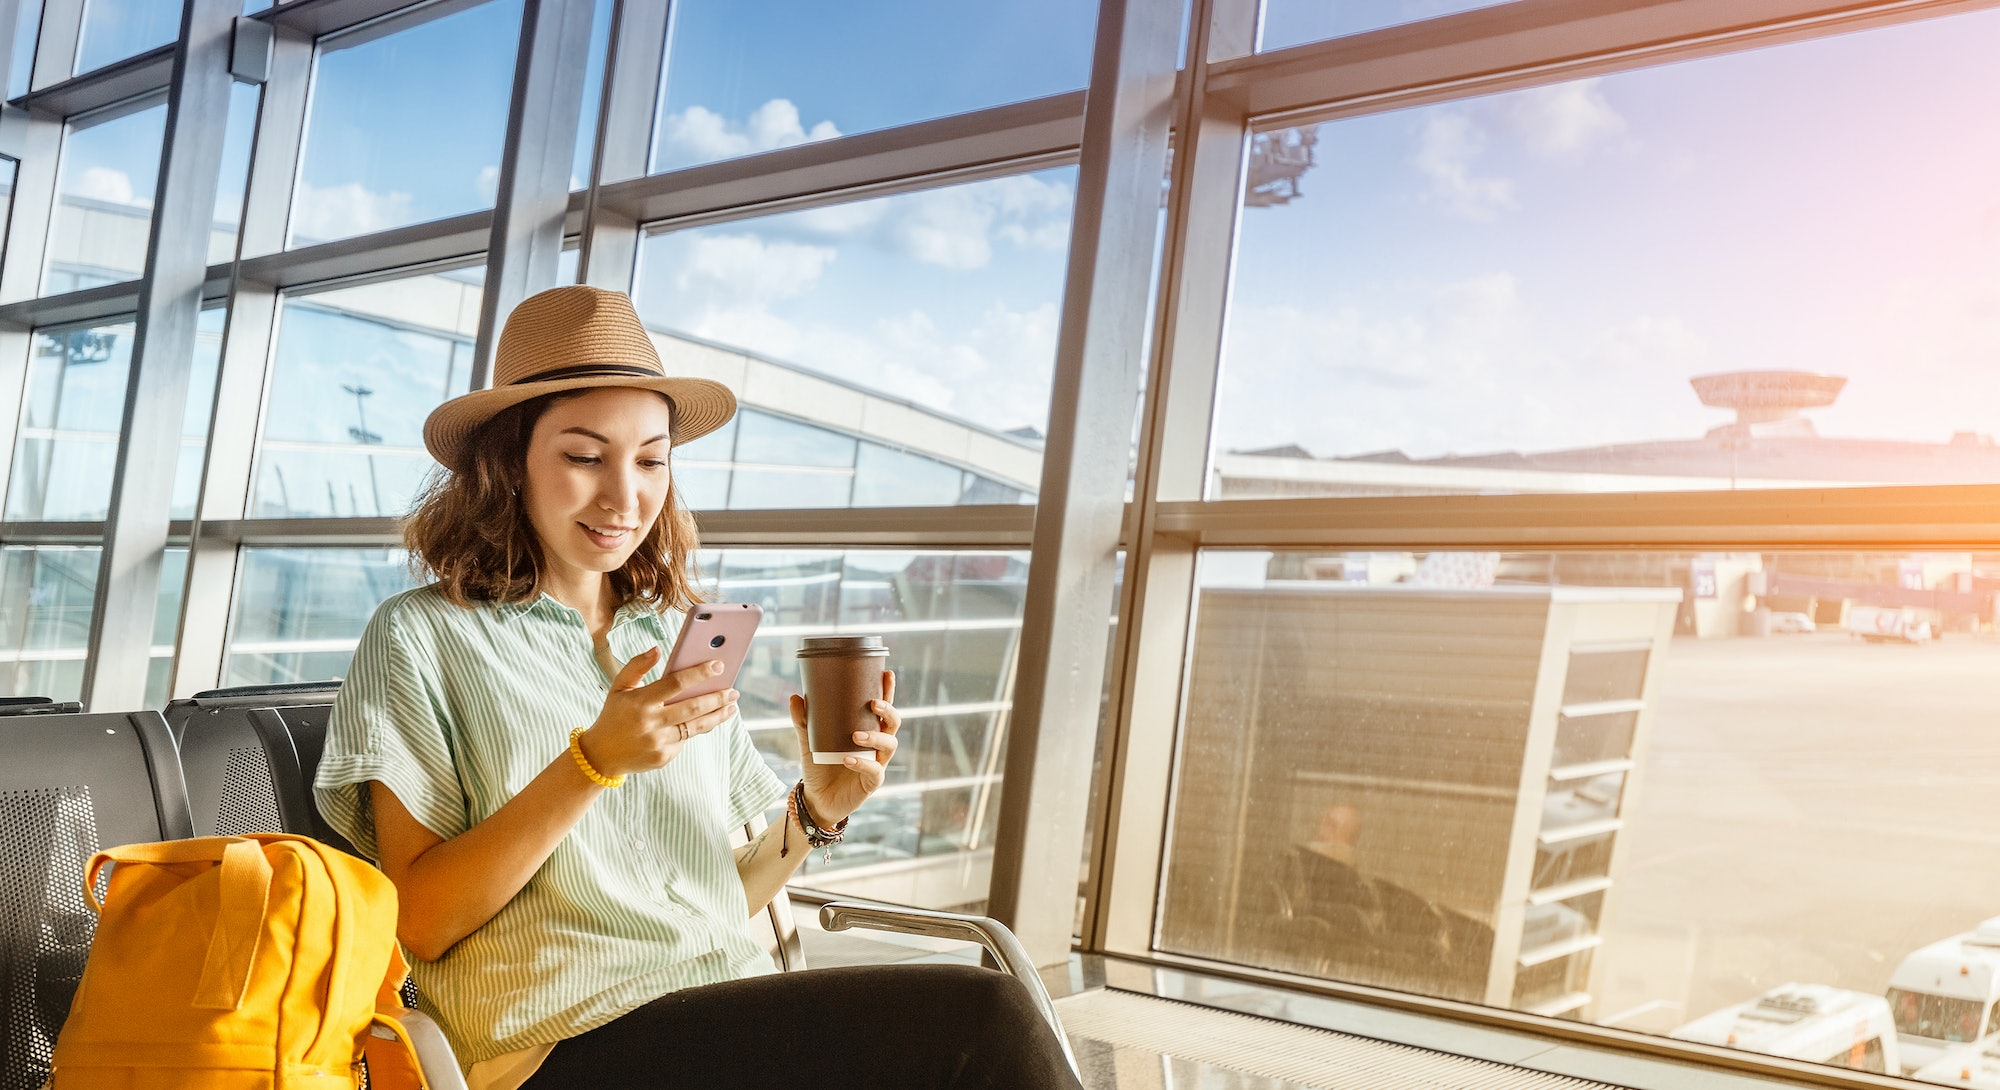 Asian girl waiting for departure at the airport on your vacation. Uses a smartphone and drinks coffee